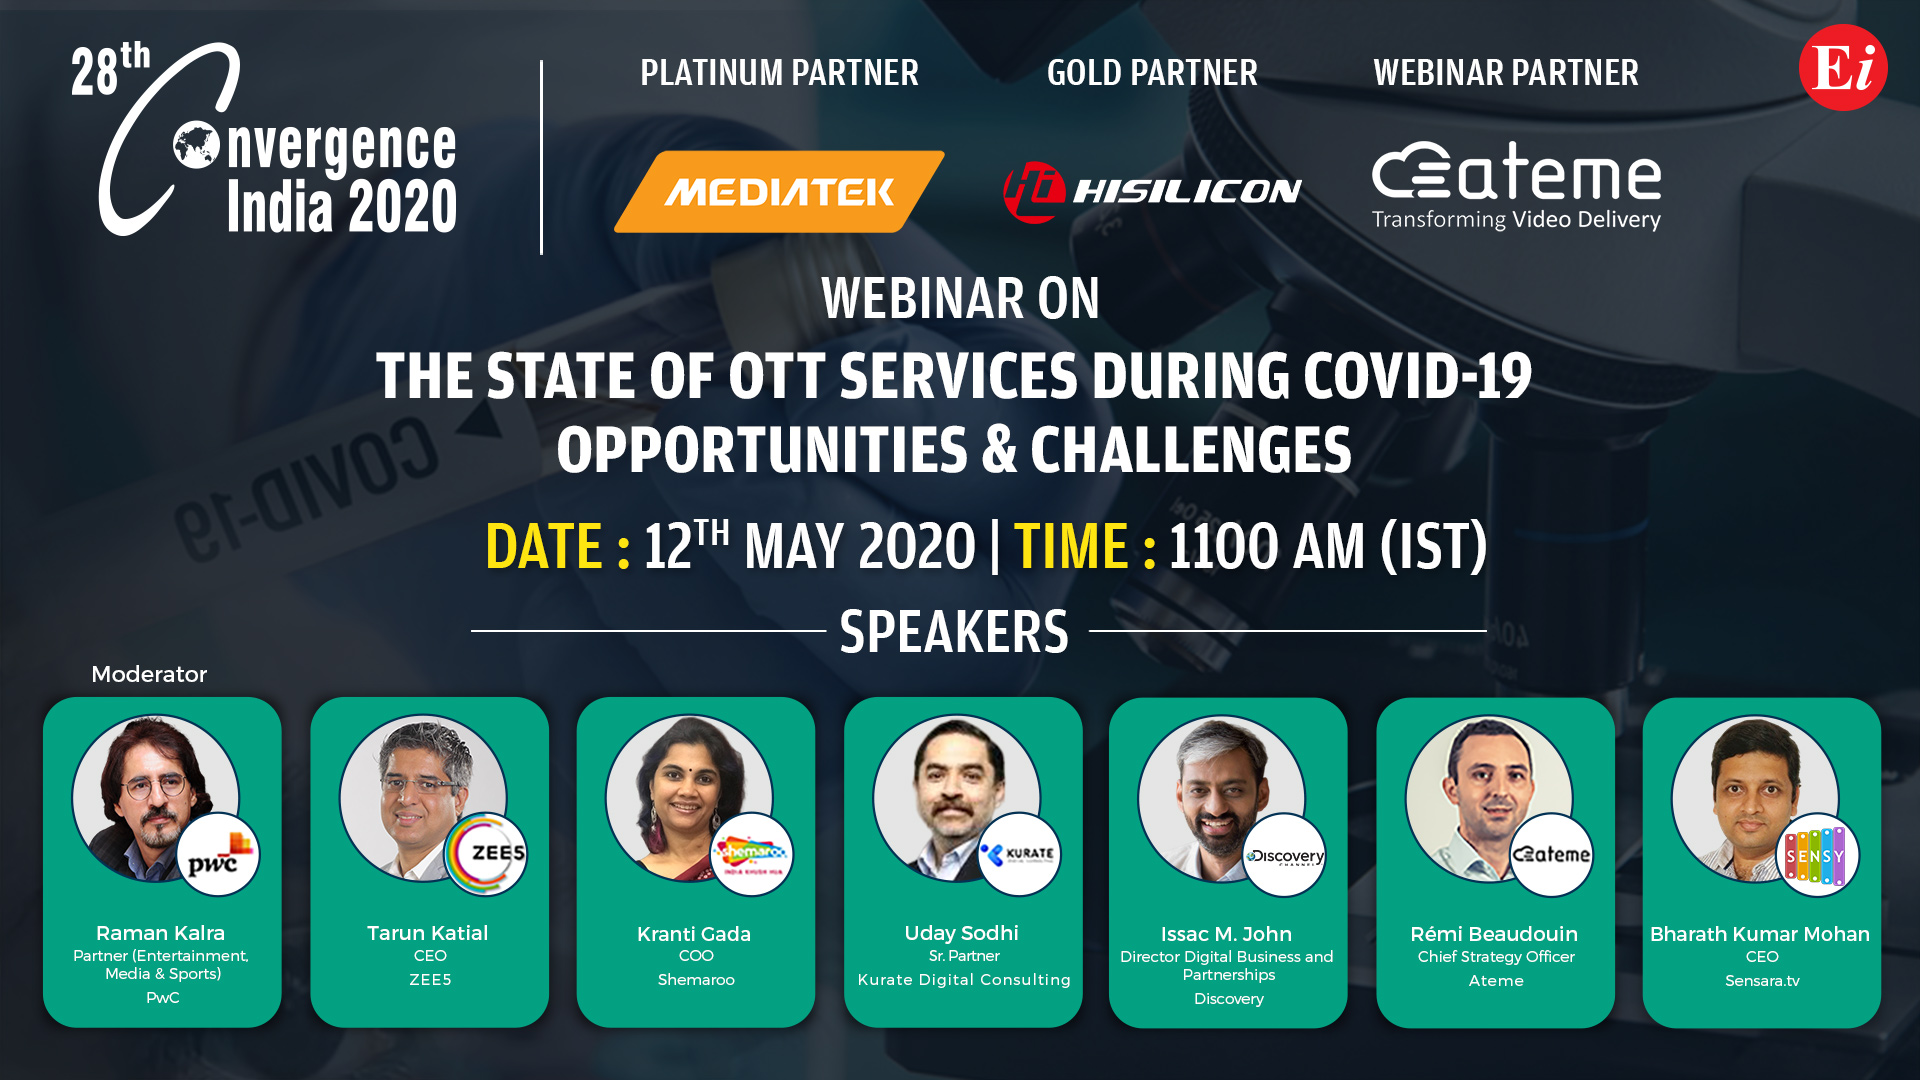 Webinar on The State of OTT Services during COVID-19